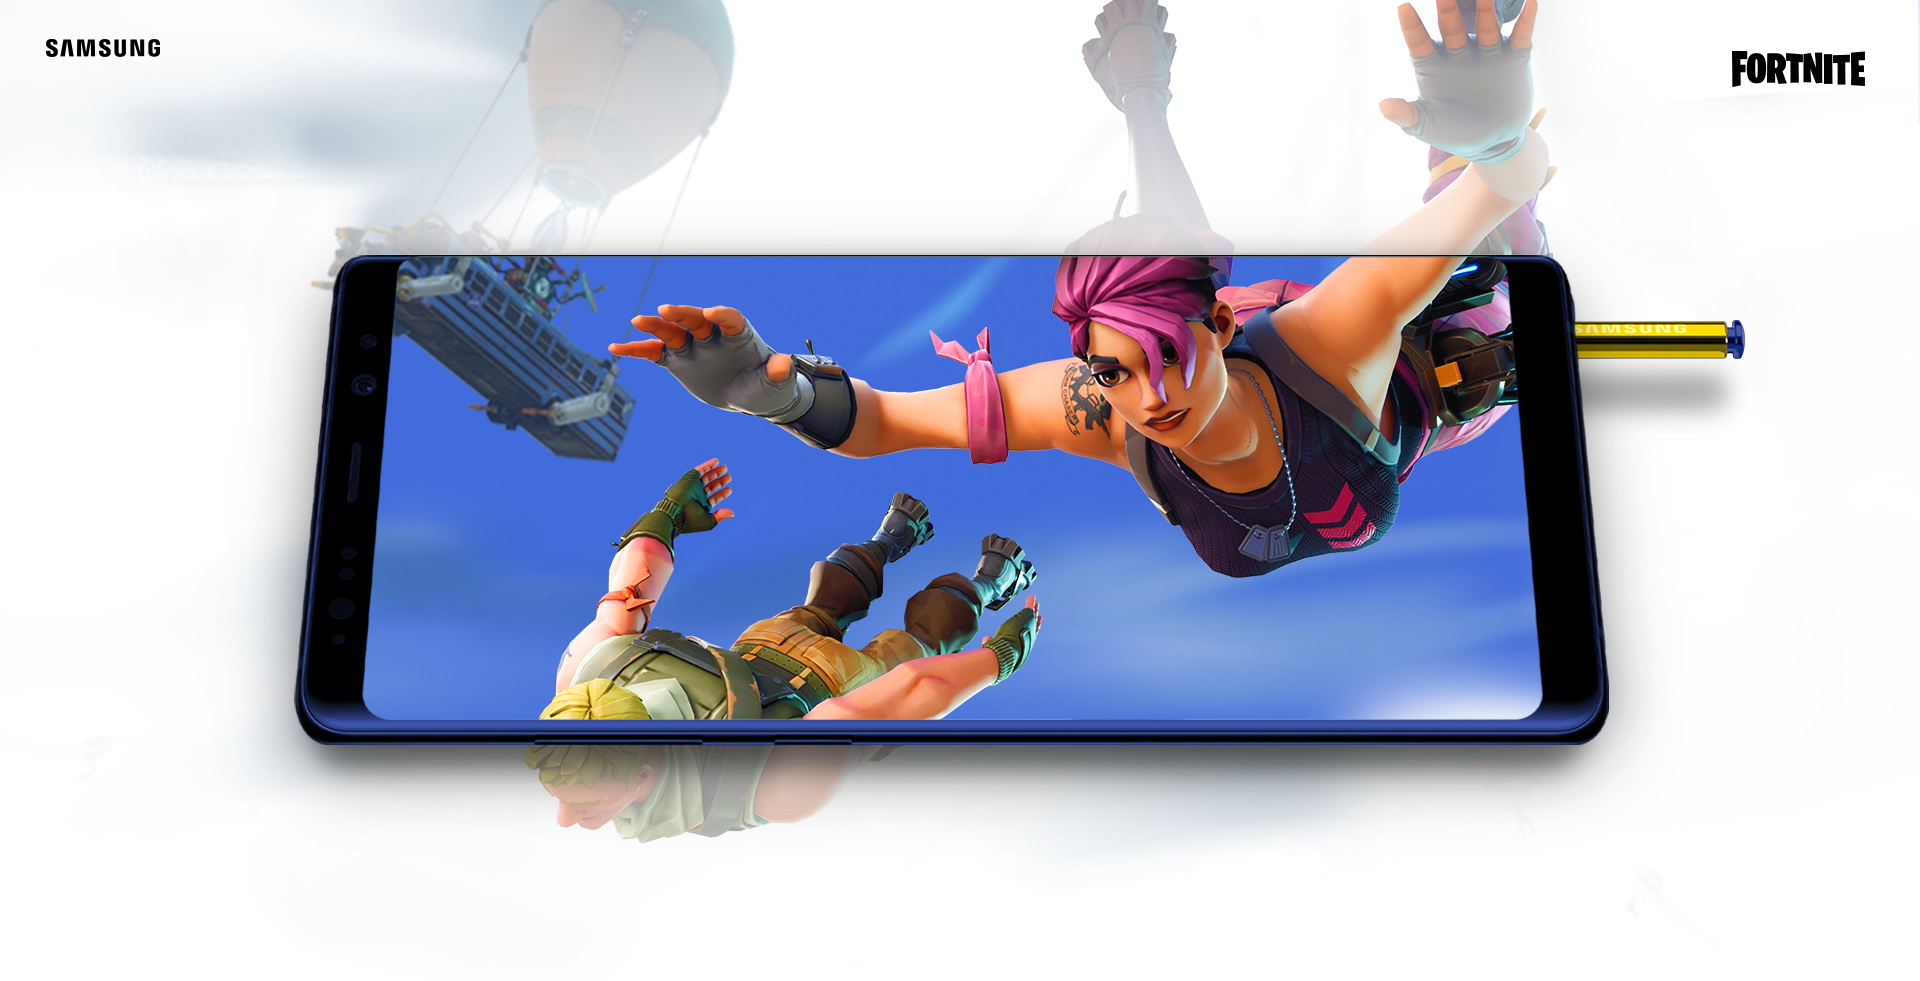 coque samsung a6 fortnite